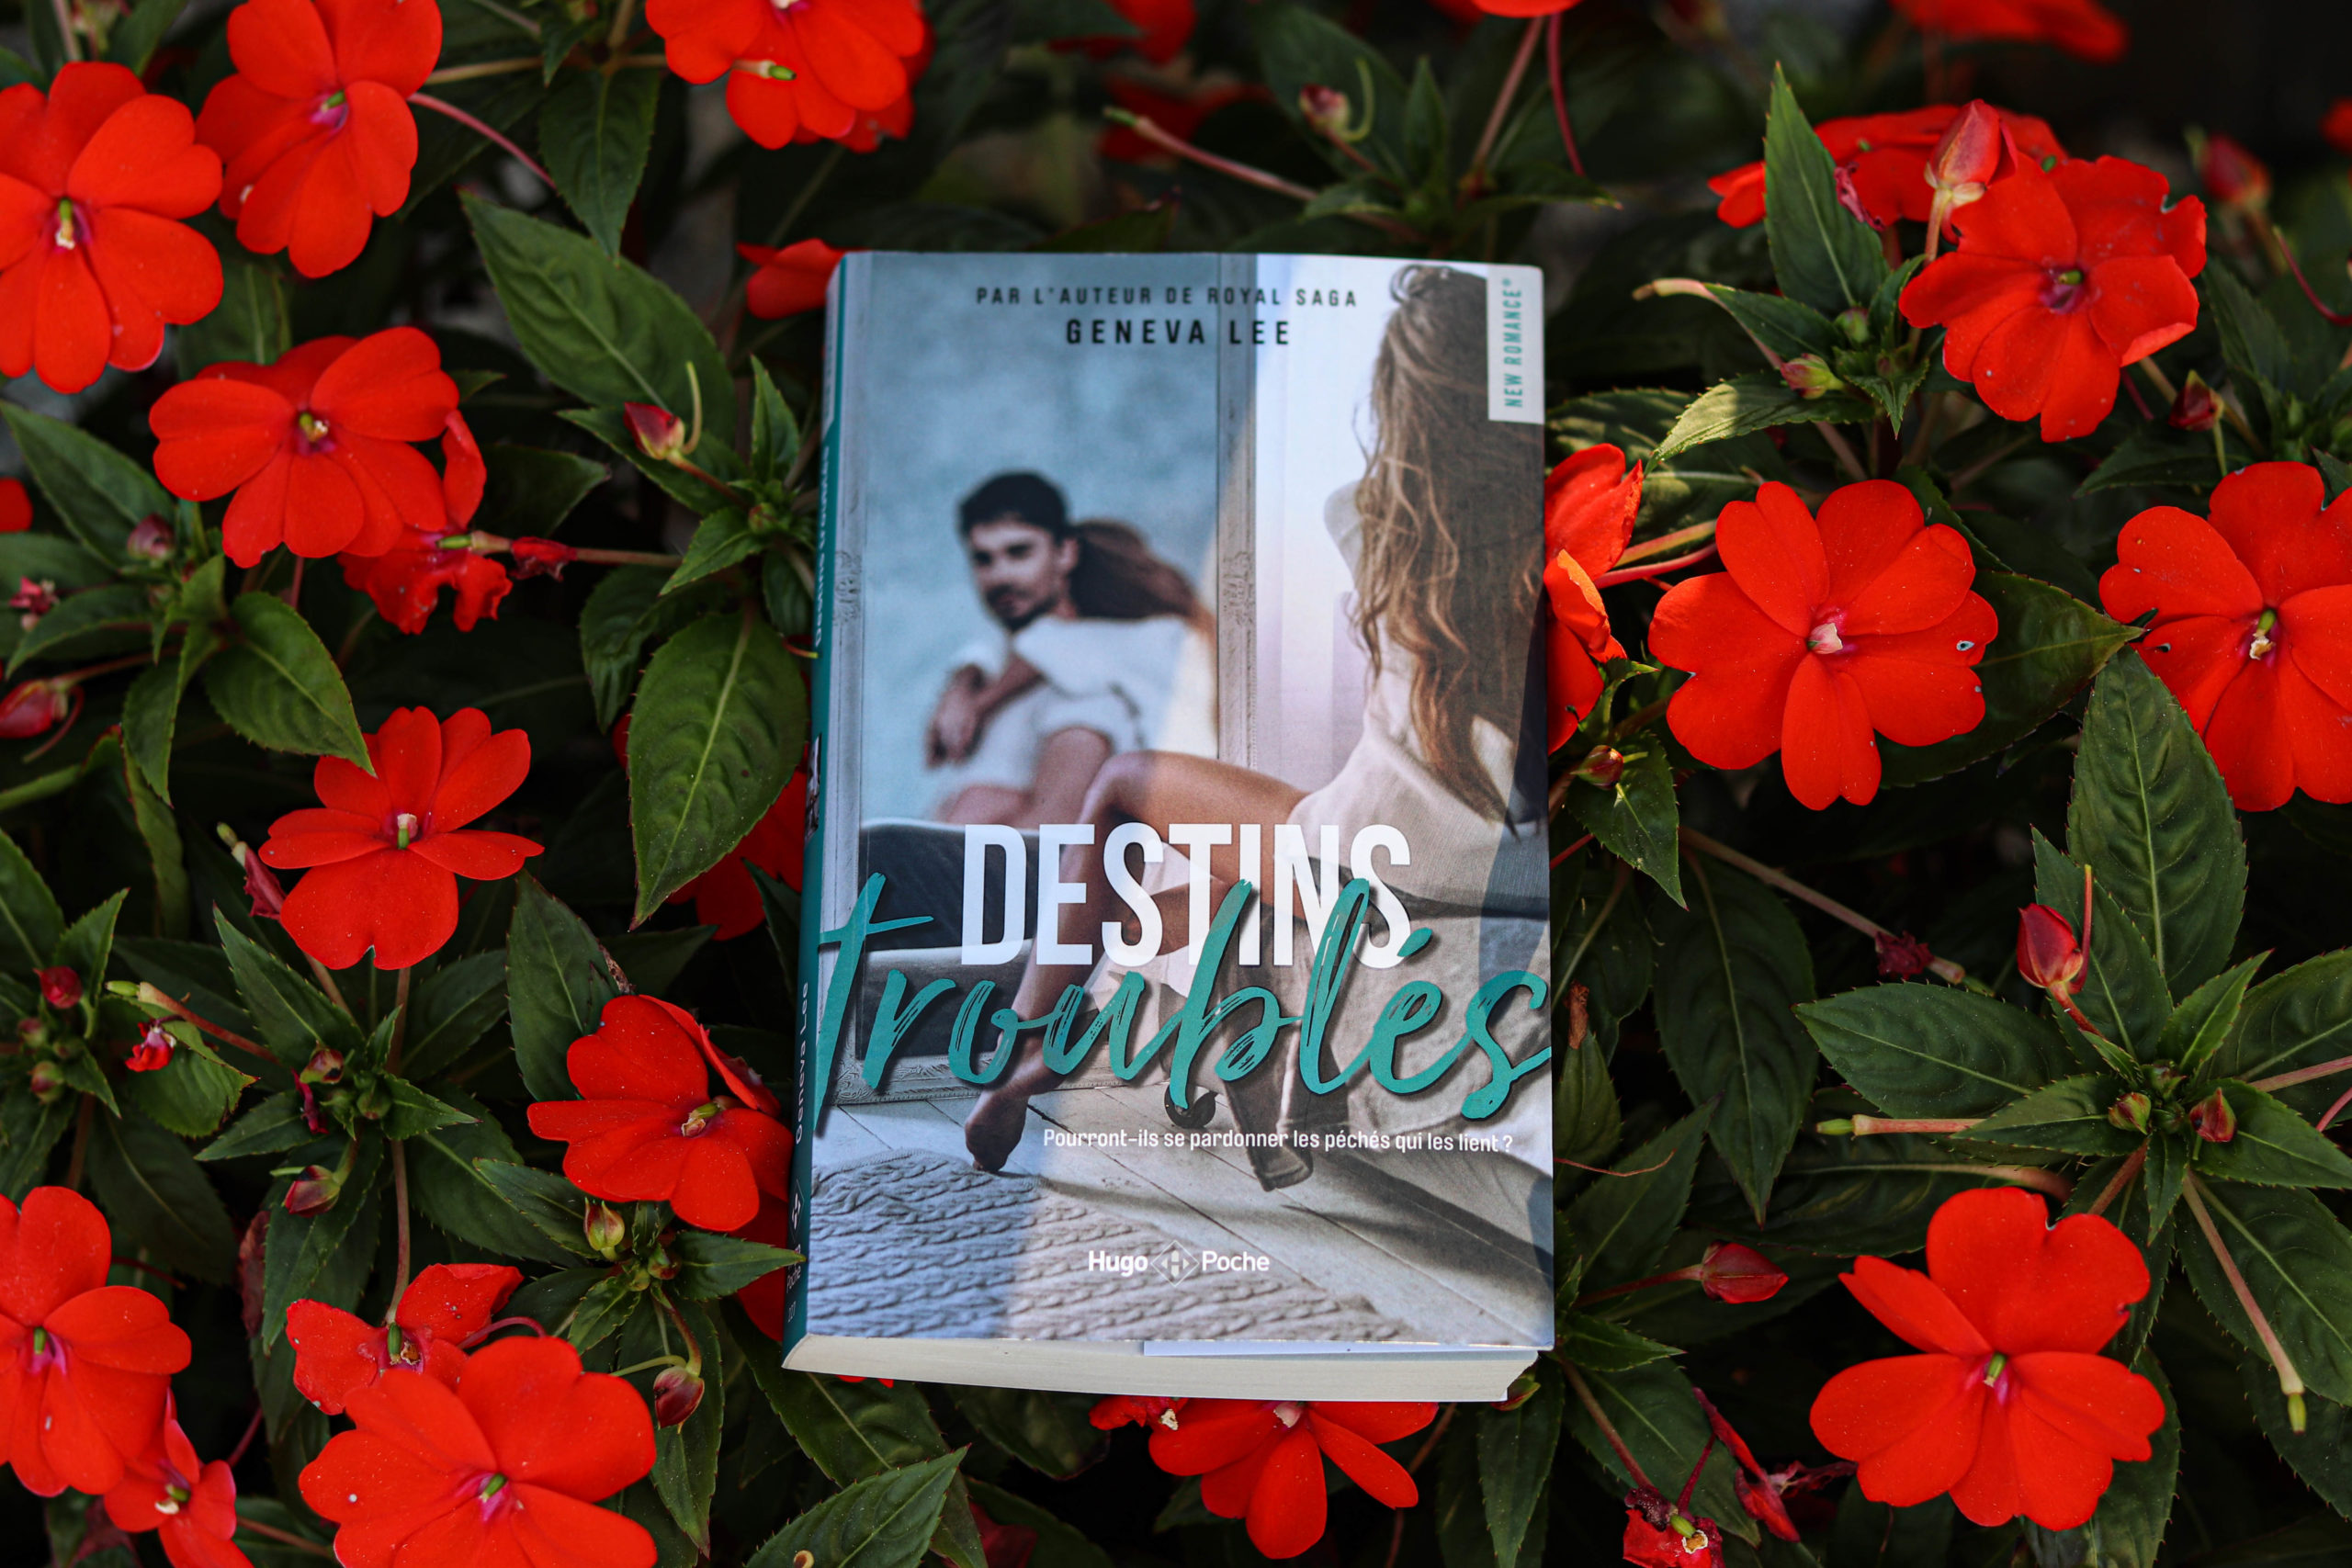 Destins troublés – Geneva Lee